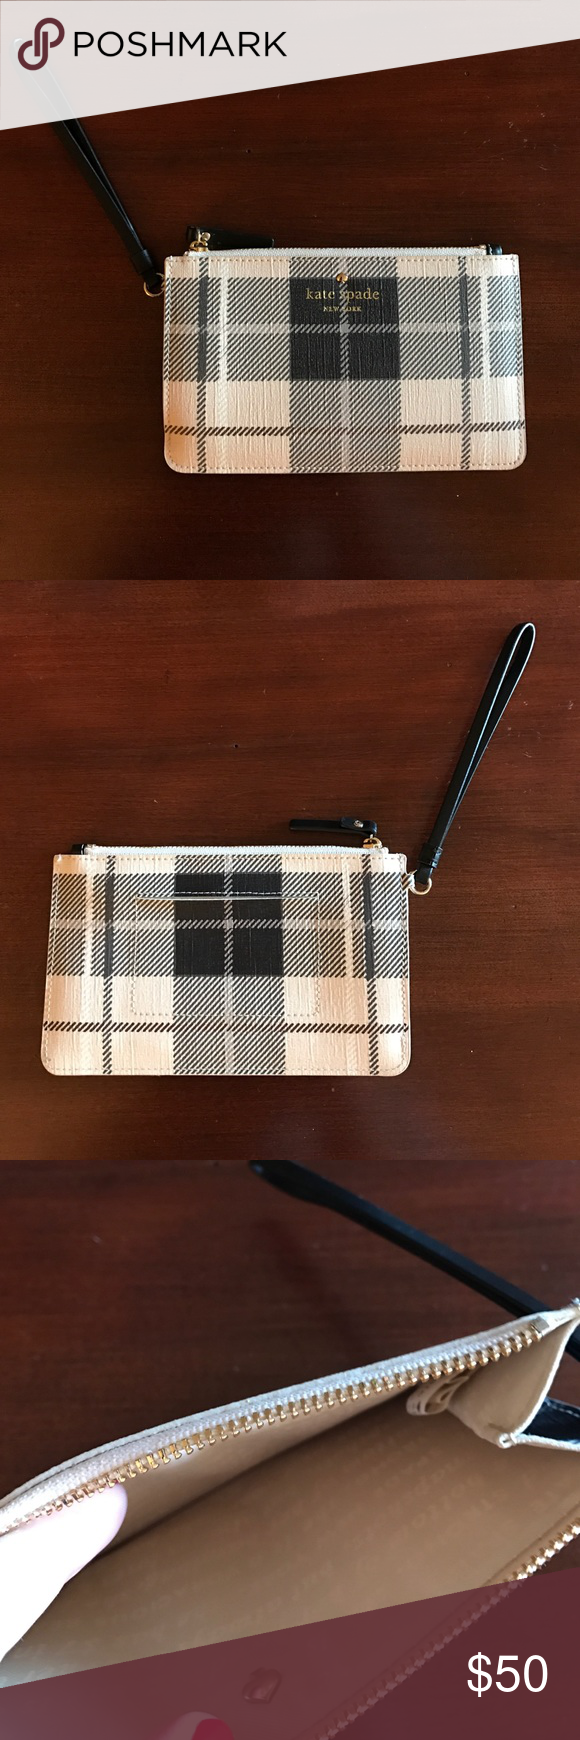 Kate Spade wristlet Plaid Kate Spade wristlet. Never used. Excellent condition. kate spade Bags Clutches & Wristlets